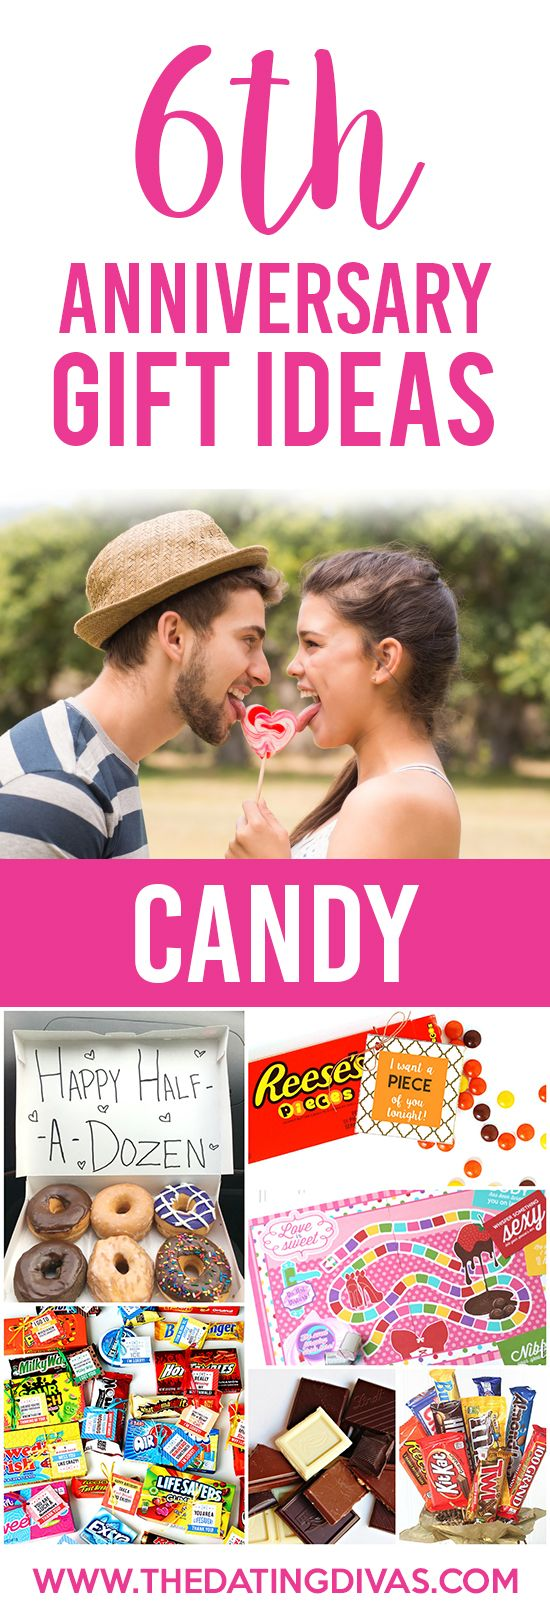 6th Anniversary Gift Ideas for your CANDY Anniversary. Such sweet, cute, and creative ideas!